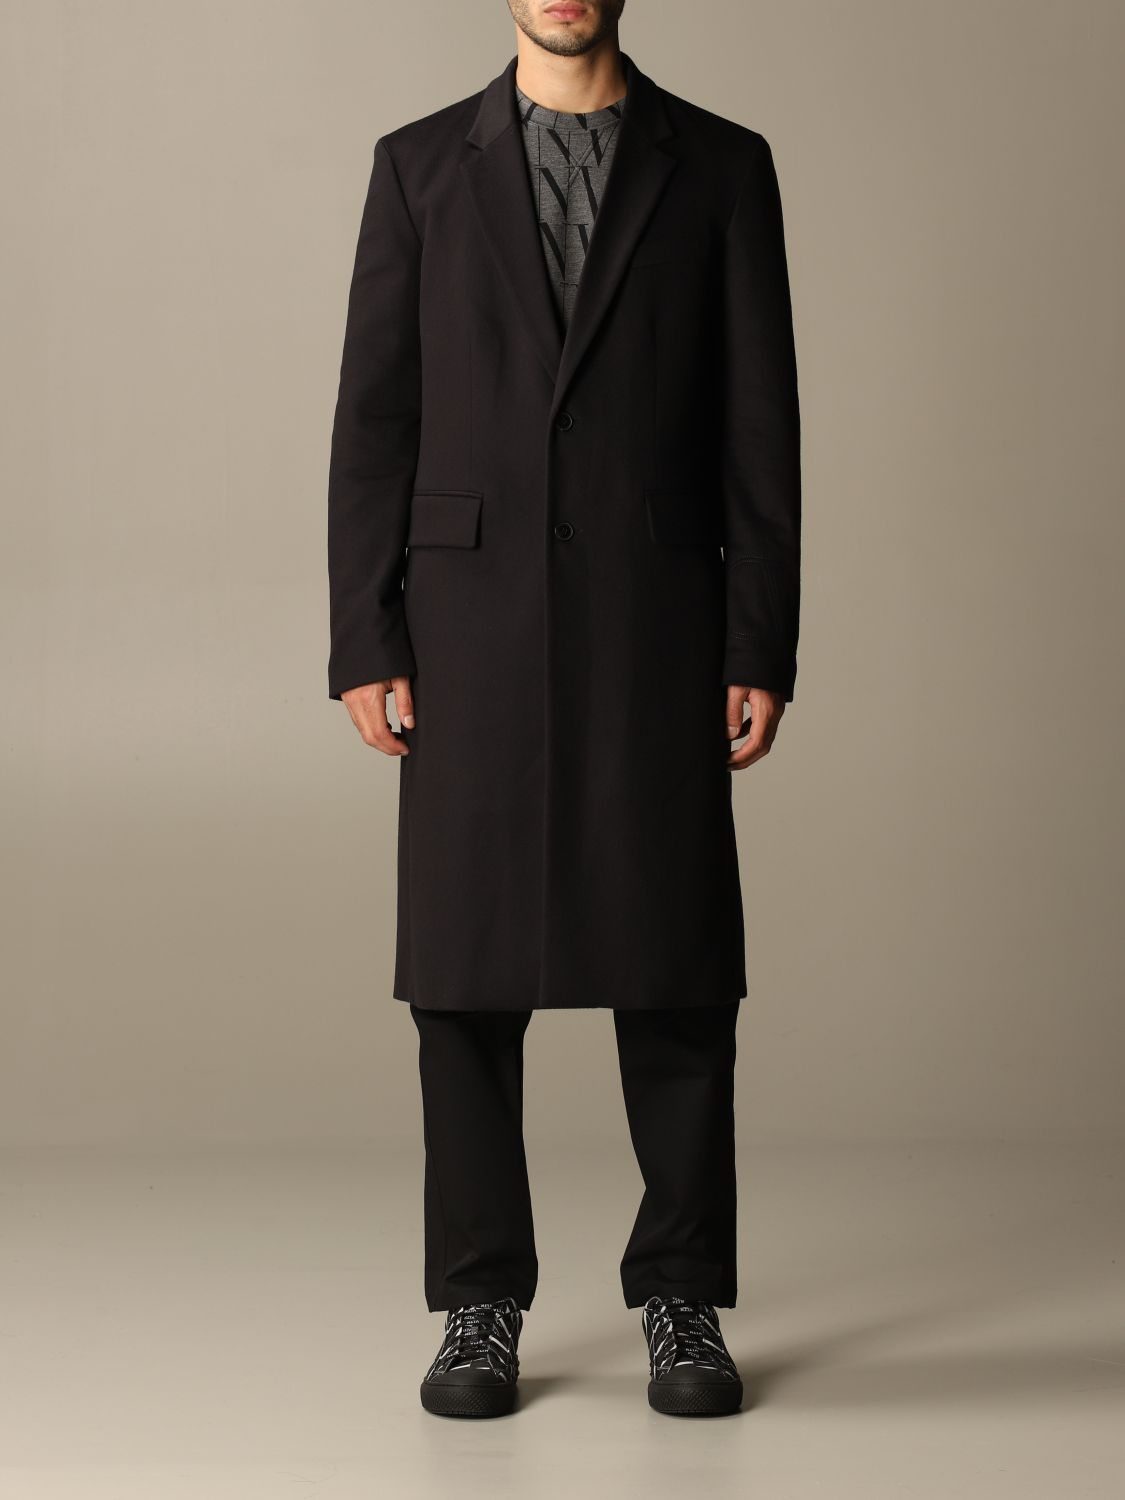 Coat Valentino: Coat men Valentino navy 1